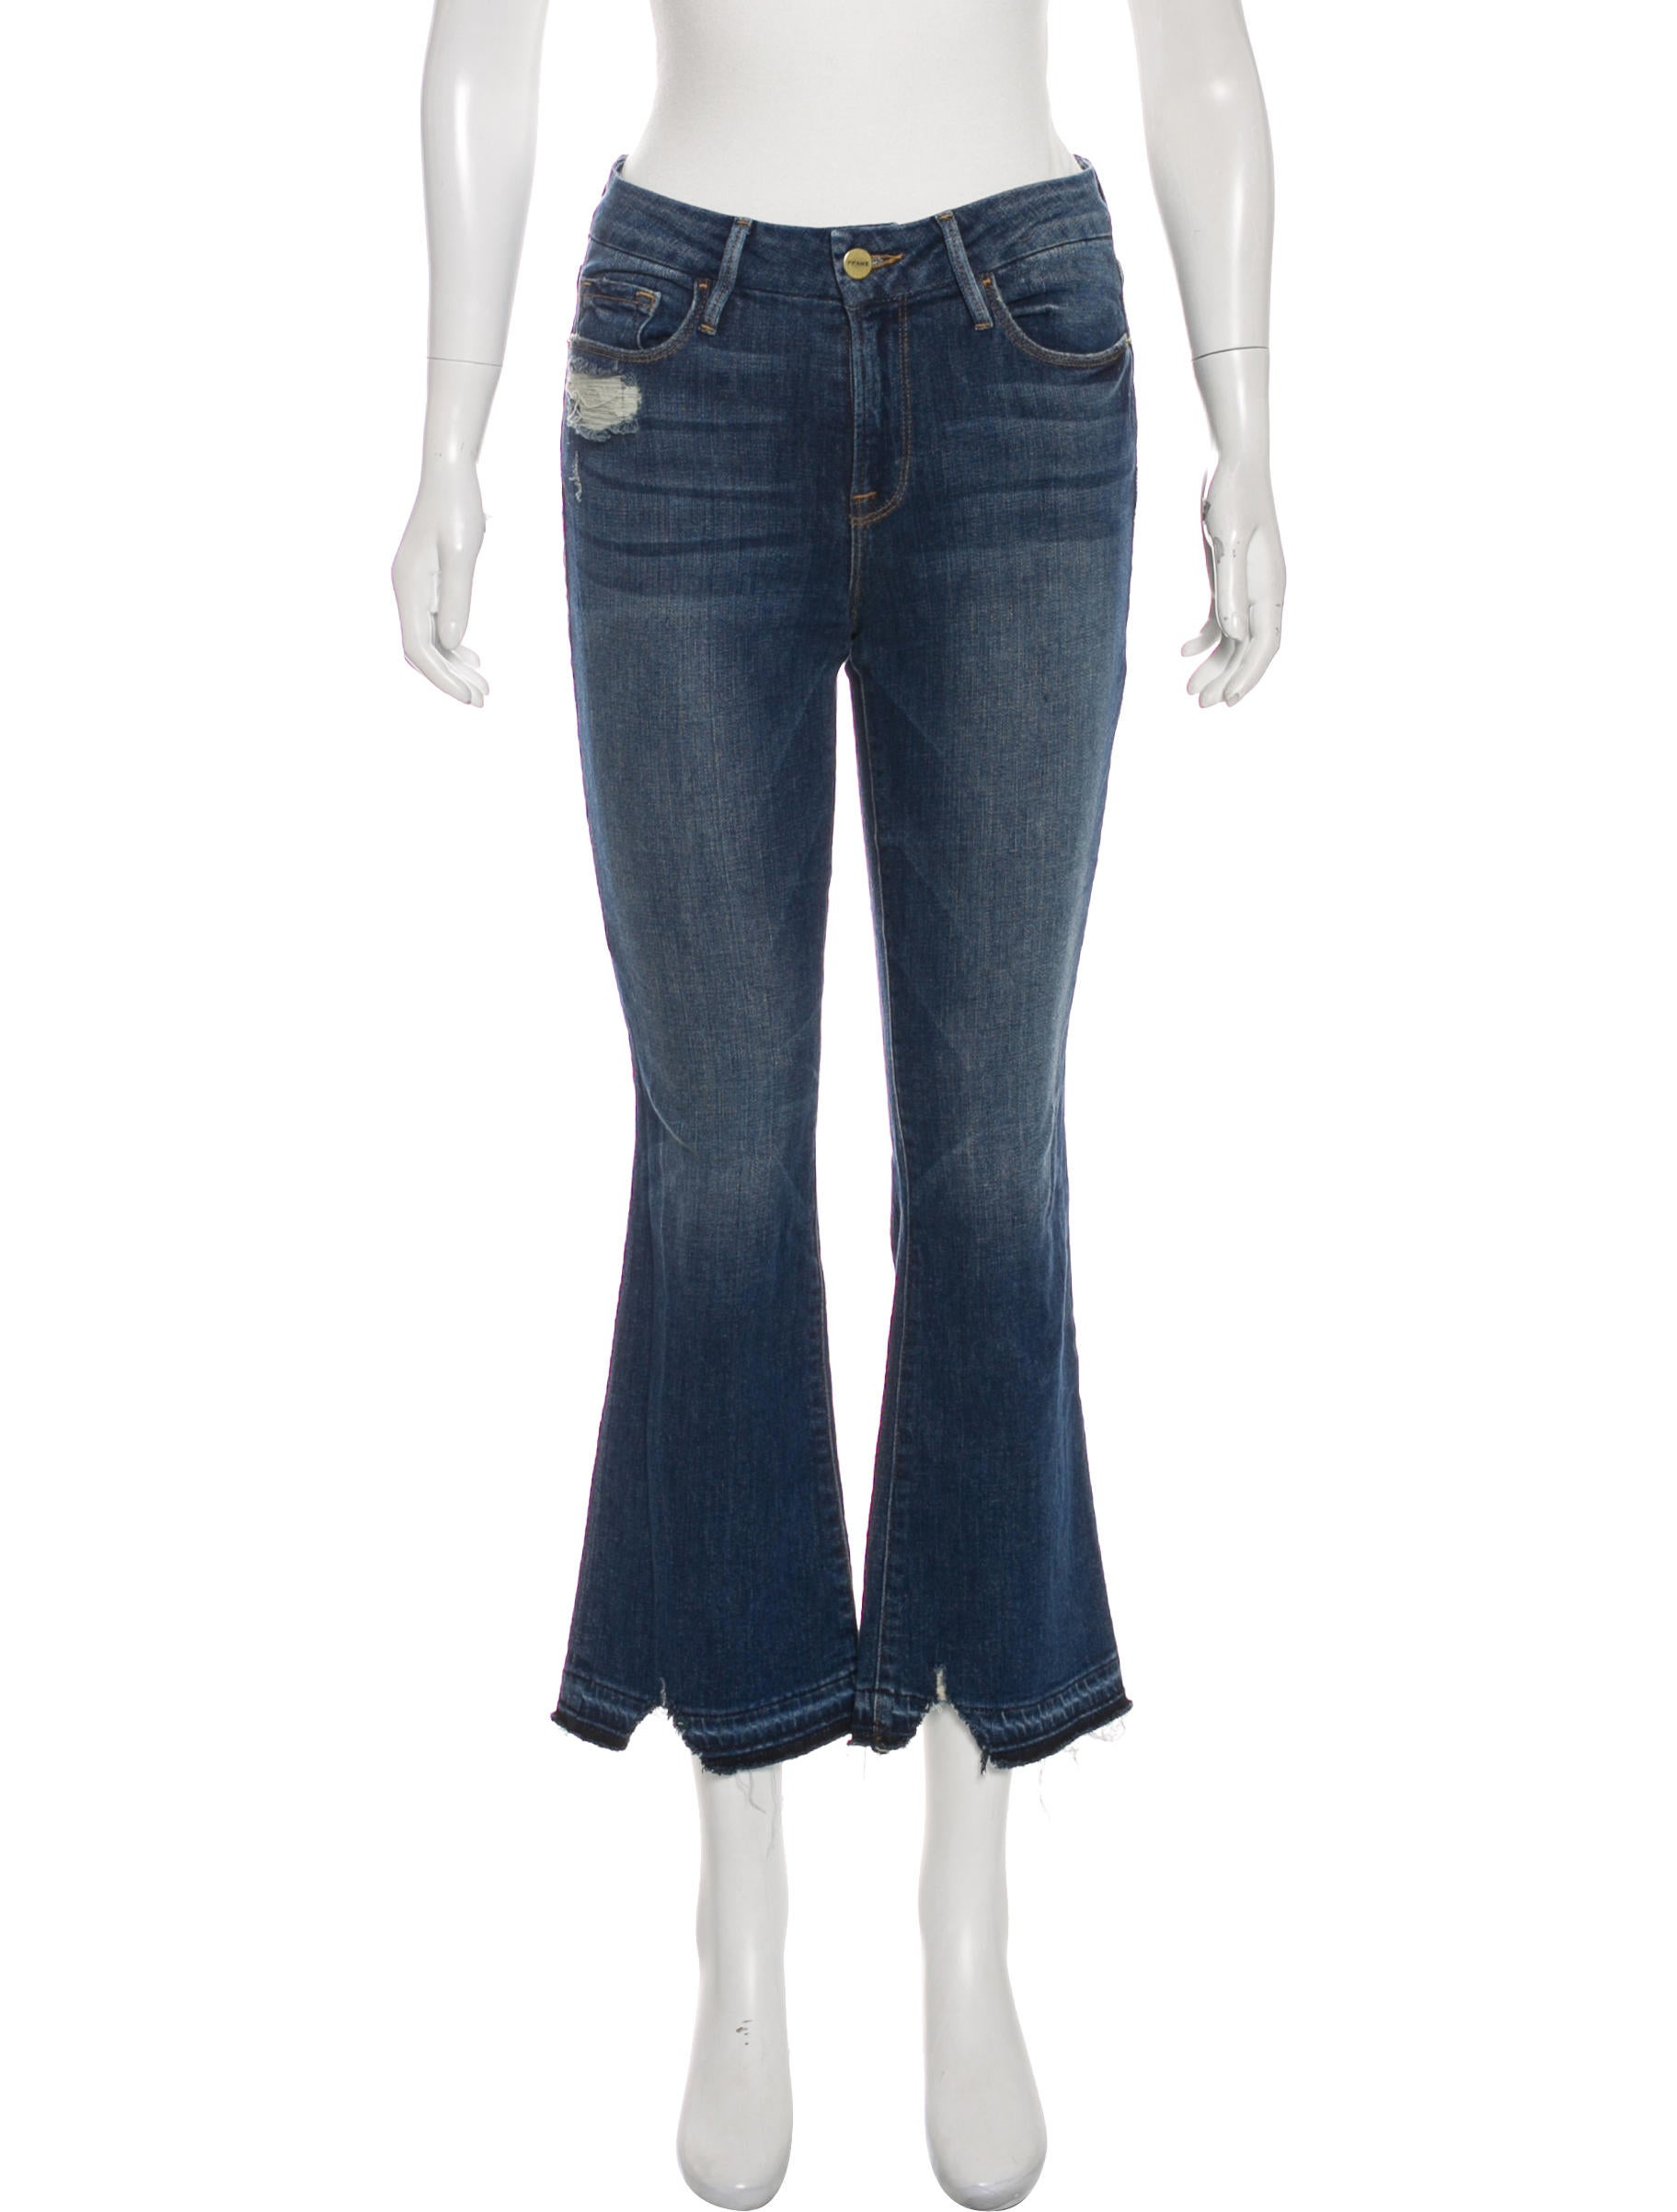 9b5982af41802 FRAME Le Crop Mini Boot Mid-Rise Jeans - Clothing - WFD35649